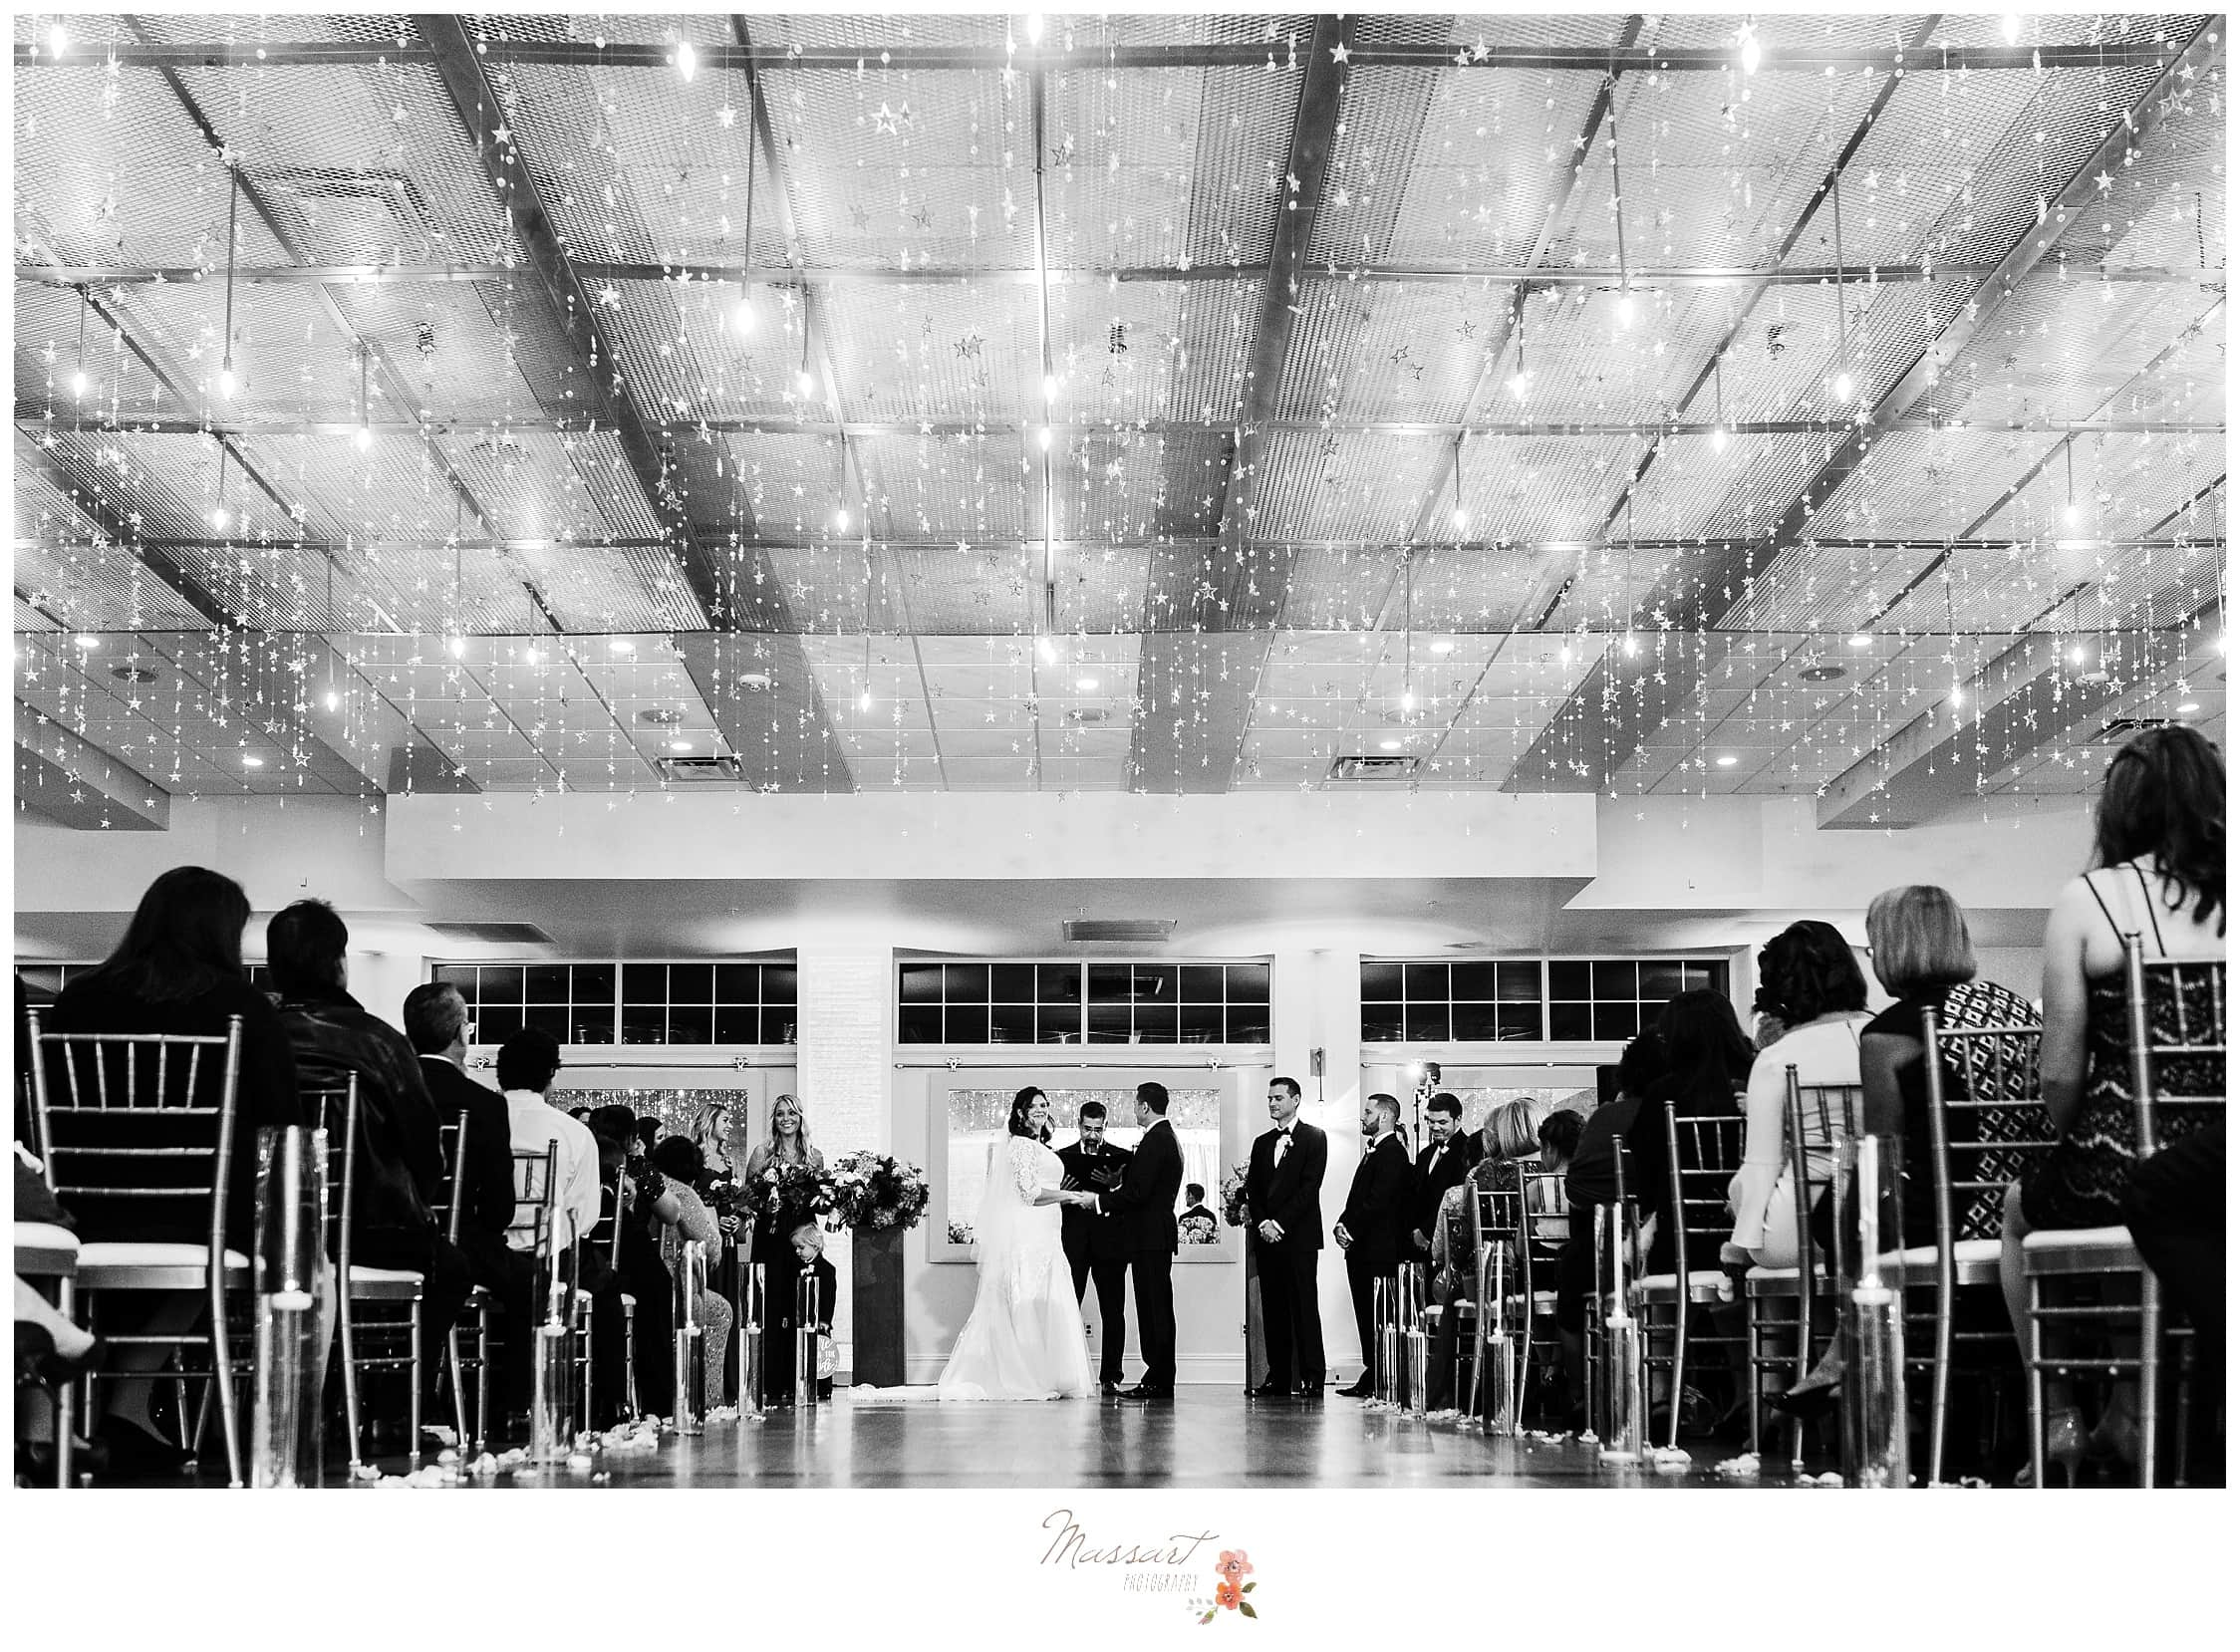 Dramatic picture of the wedding ceremony in the ballroom at the atlantic resort captured by massart photography